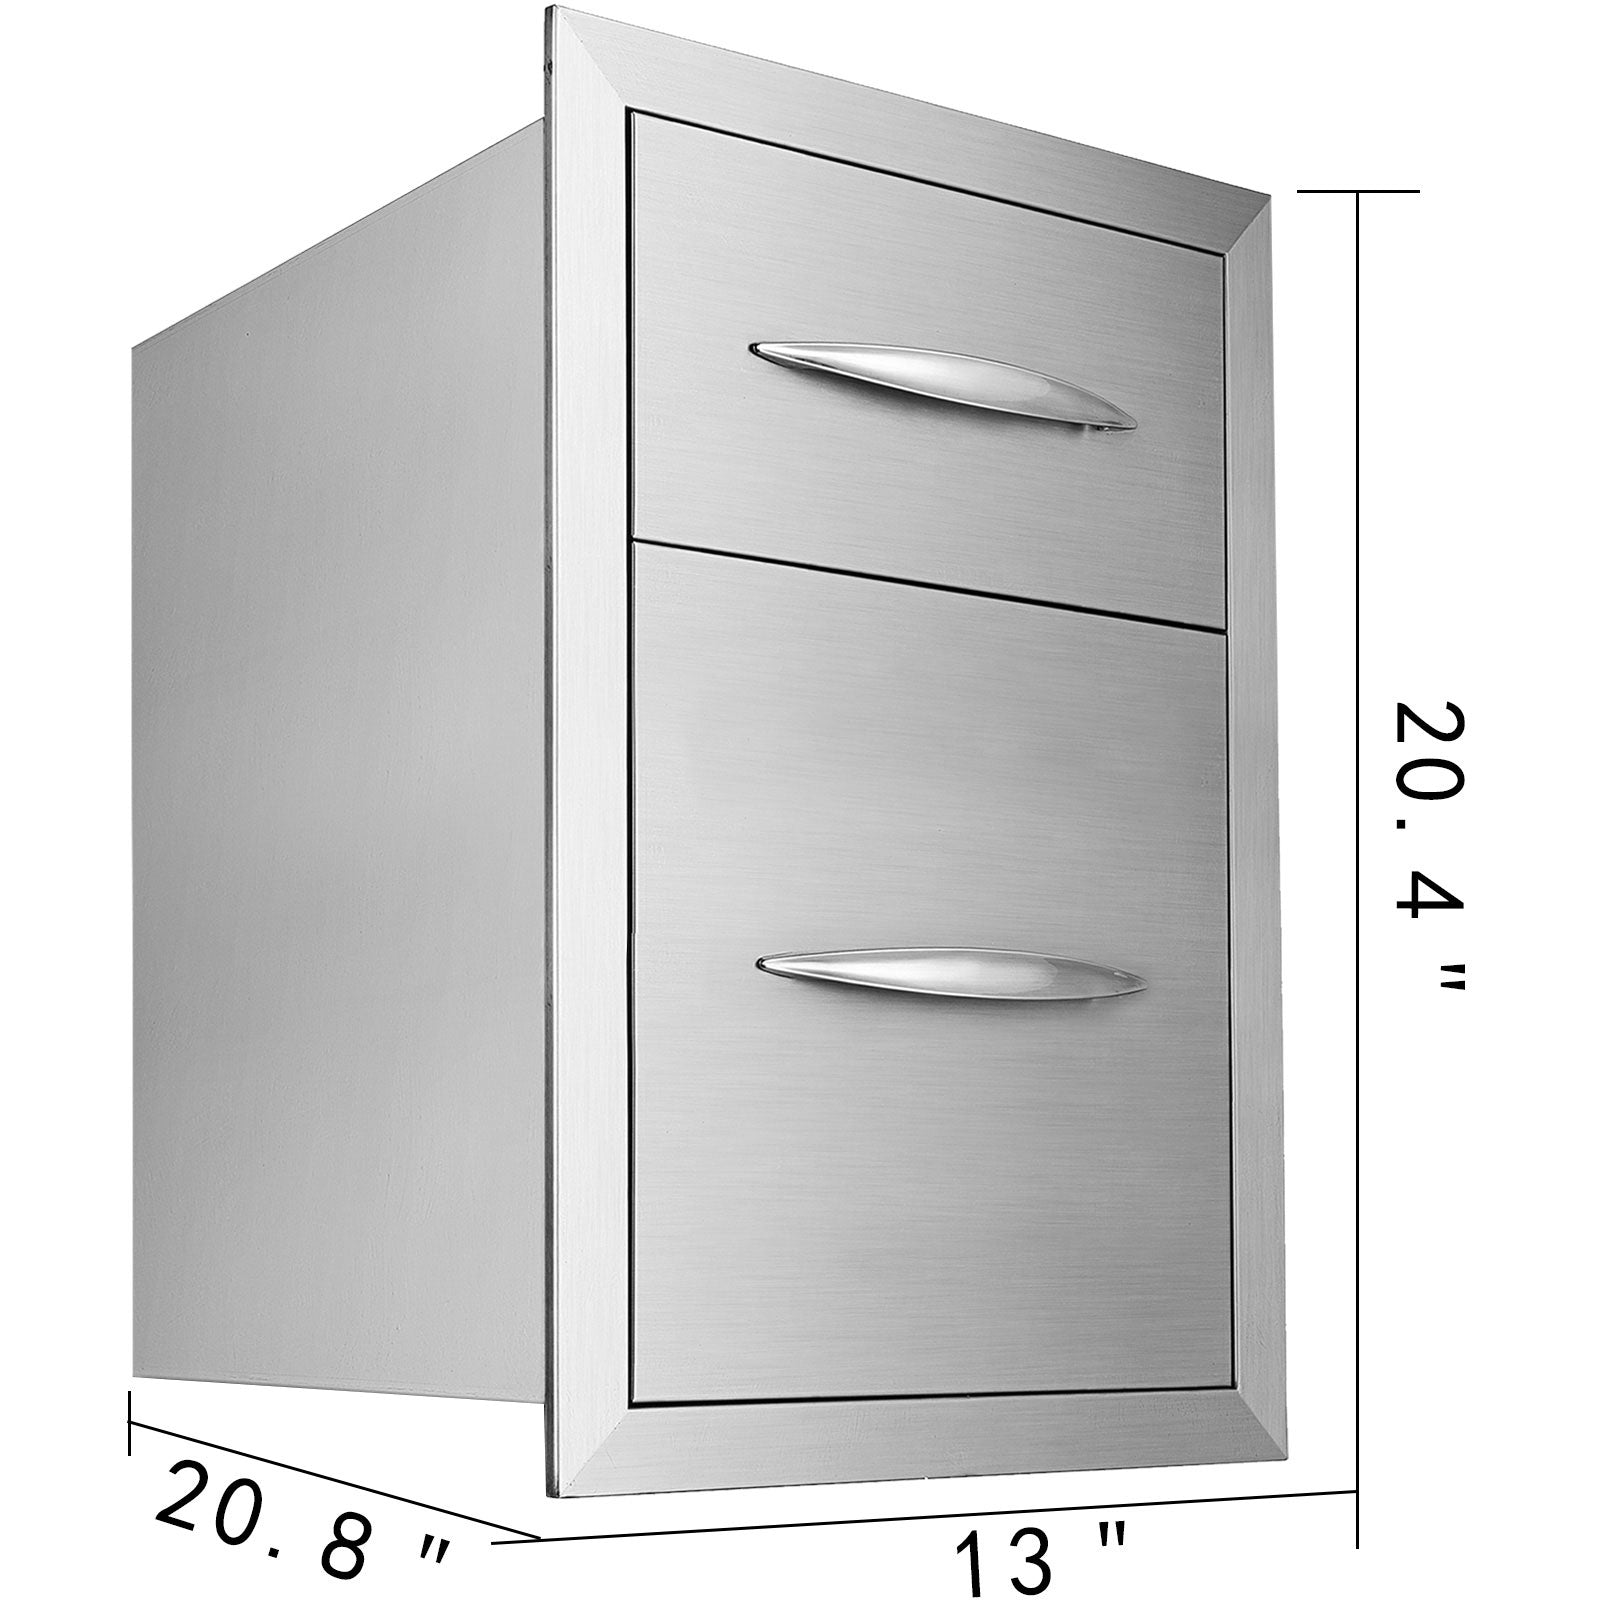 Double Bbq Access Drawer 53*33*52cm Built-in Cabinet Enclosed Drawer Polished